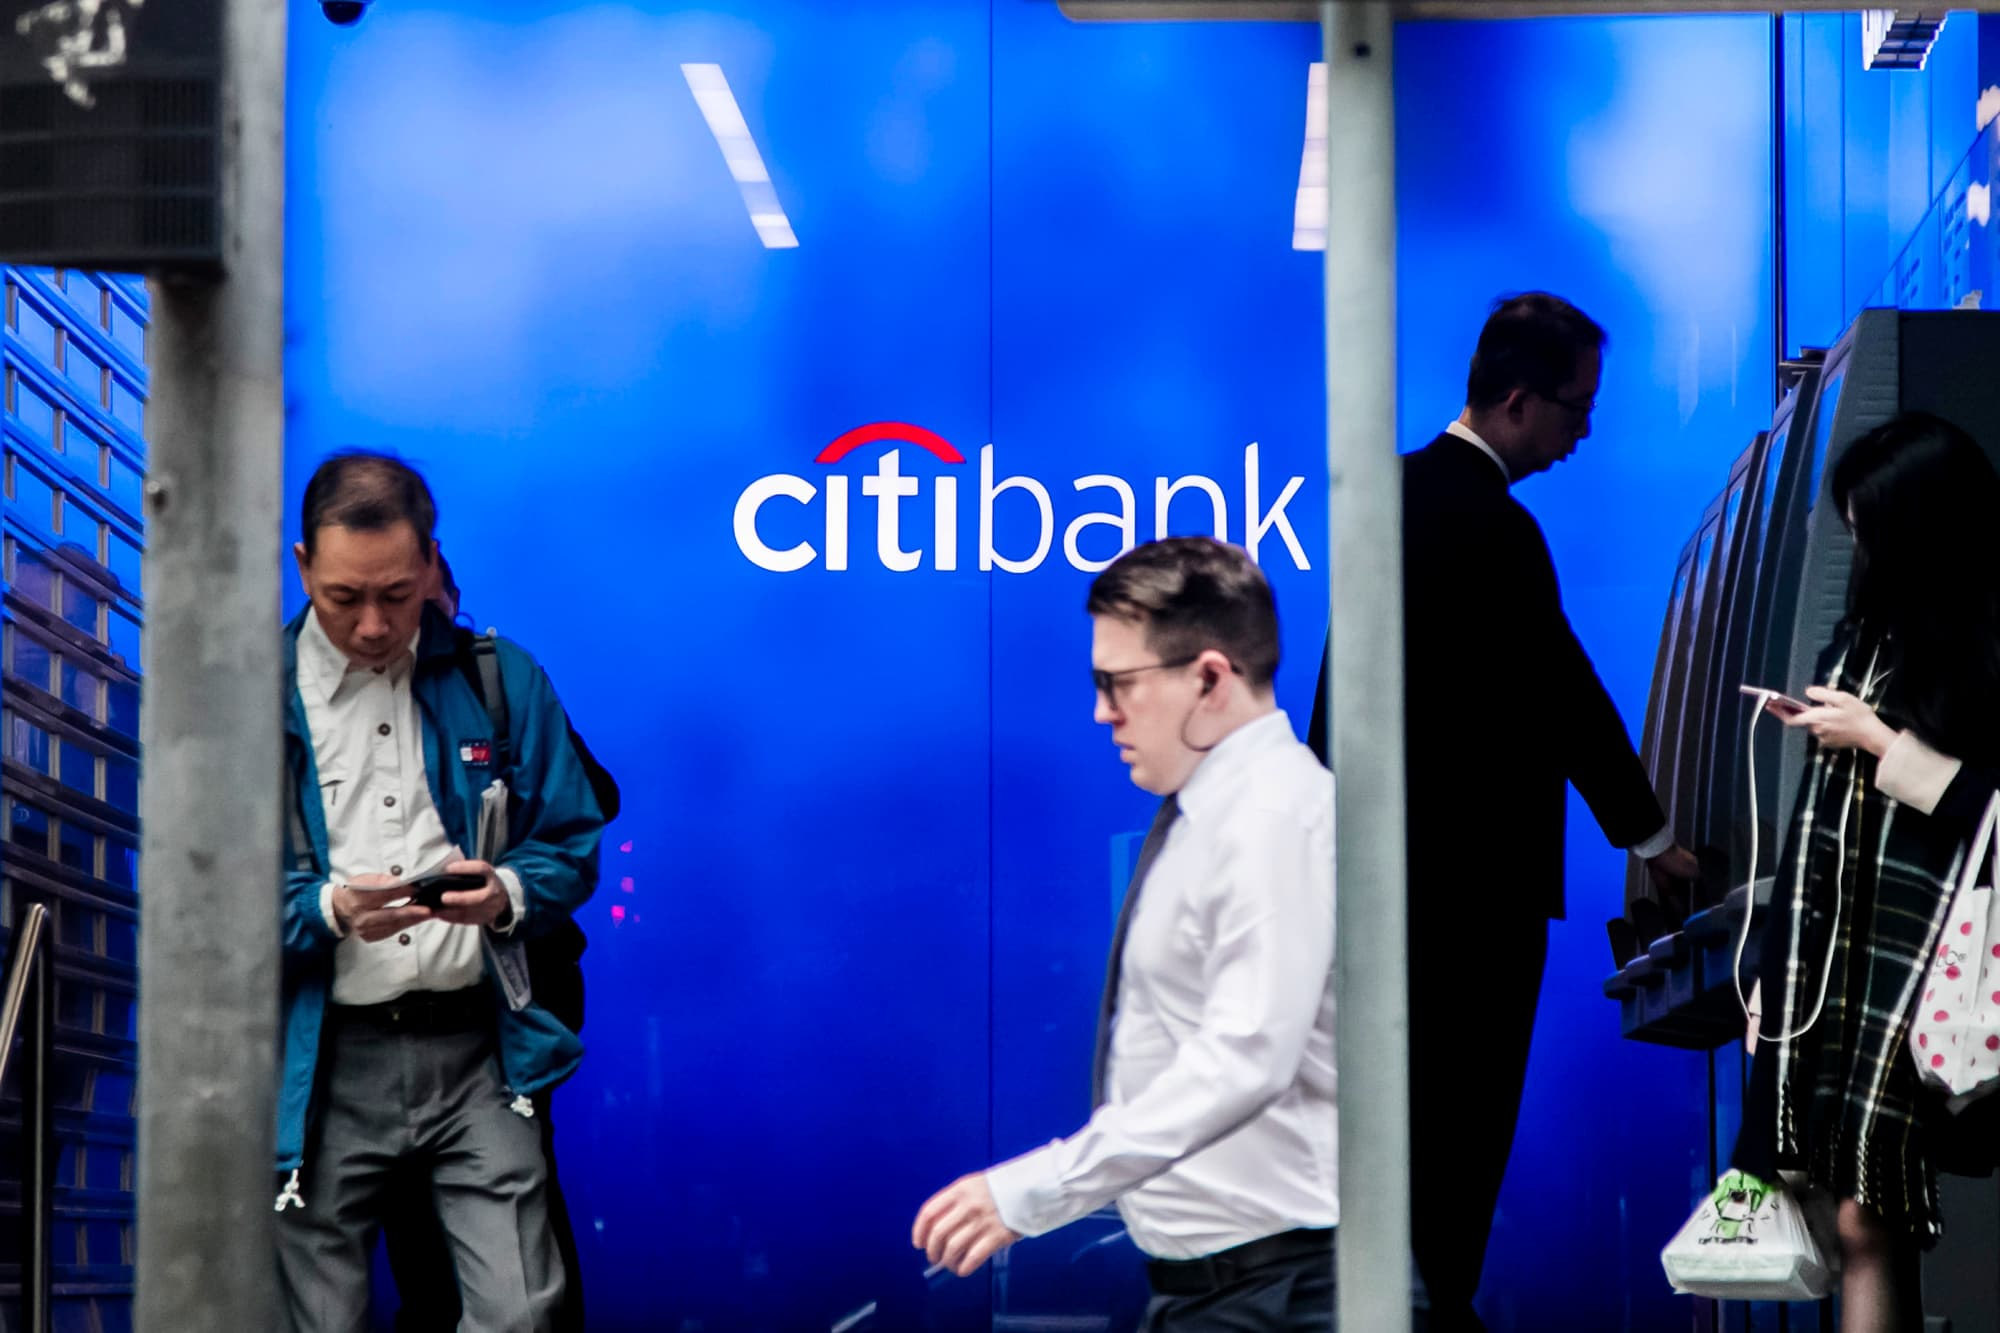 Financial stocks led by Citigroup enter correction, down 10% from highs, on yield curve concern